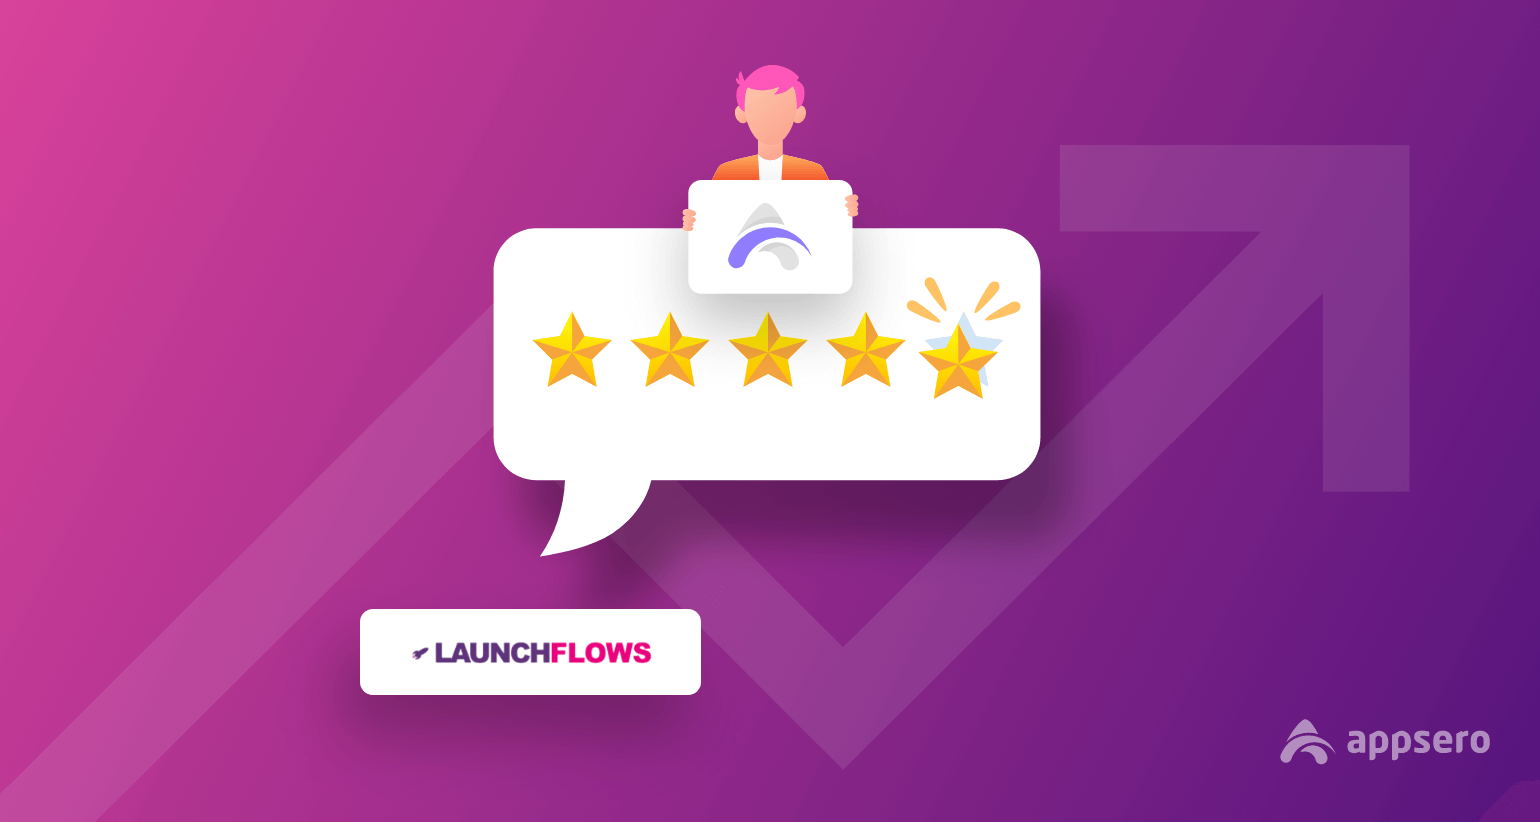 How LaunchFlows Is Managing Their WordPress Plugins with Appsero